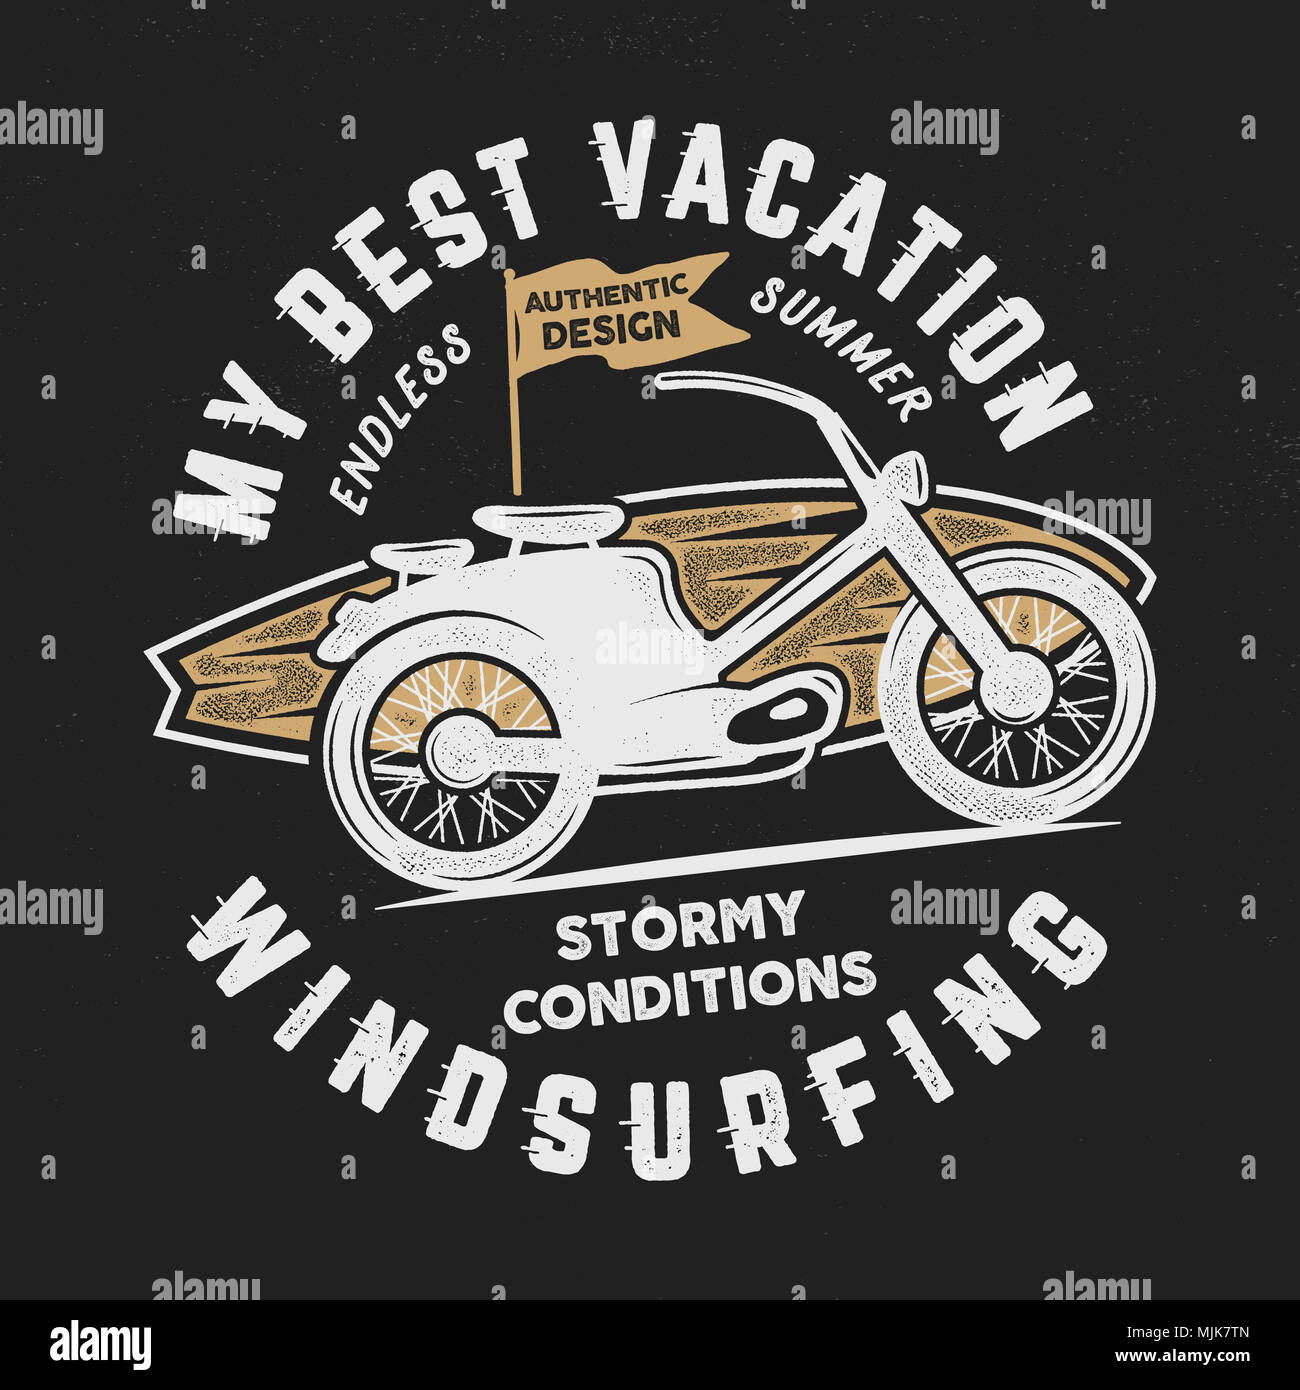 4c627bbd863 Summer travel t shirt. poster concept with retro surfboard and motorcycle.  Surfing tee design template. Stock emblem isolated